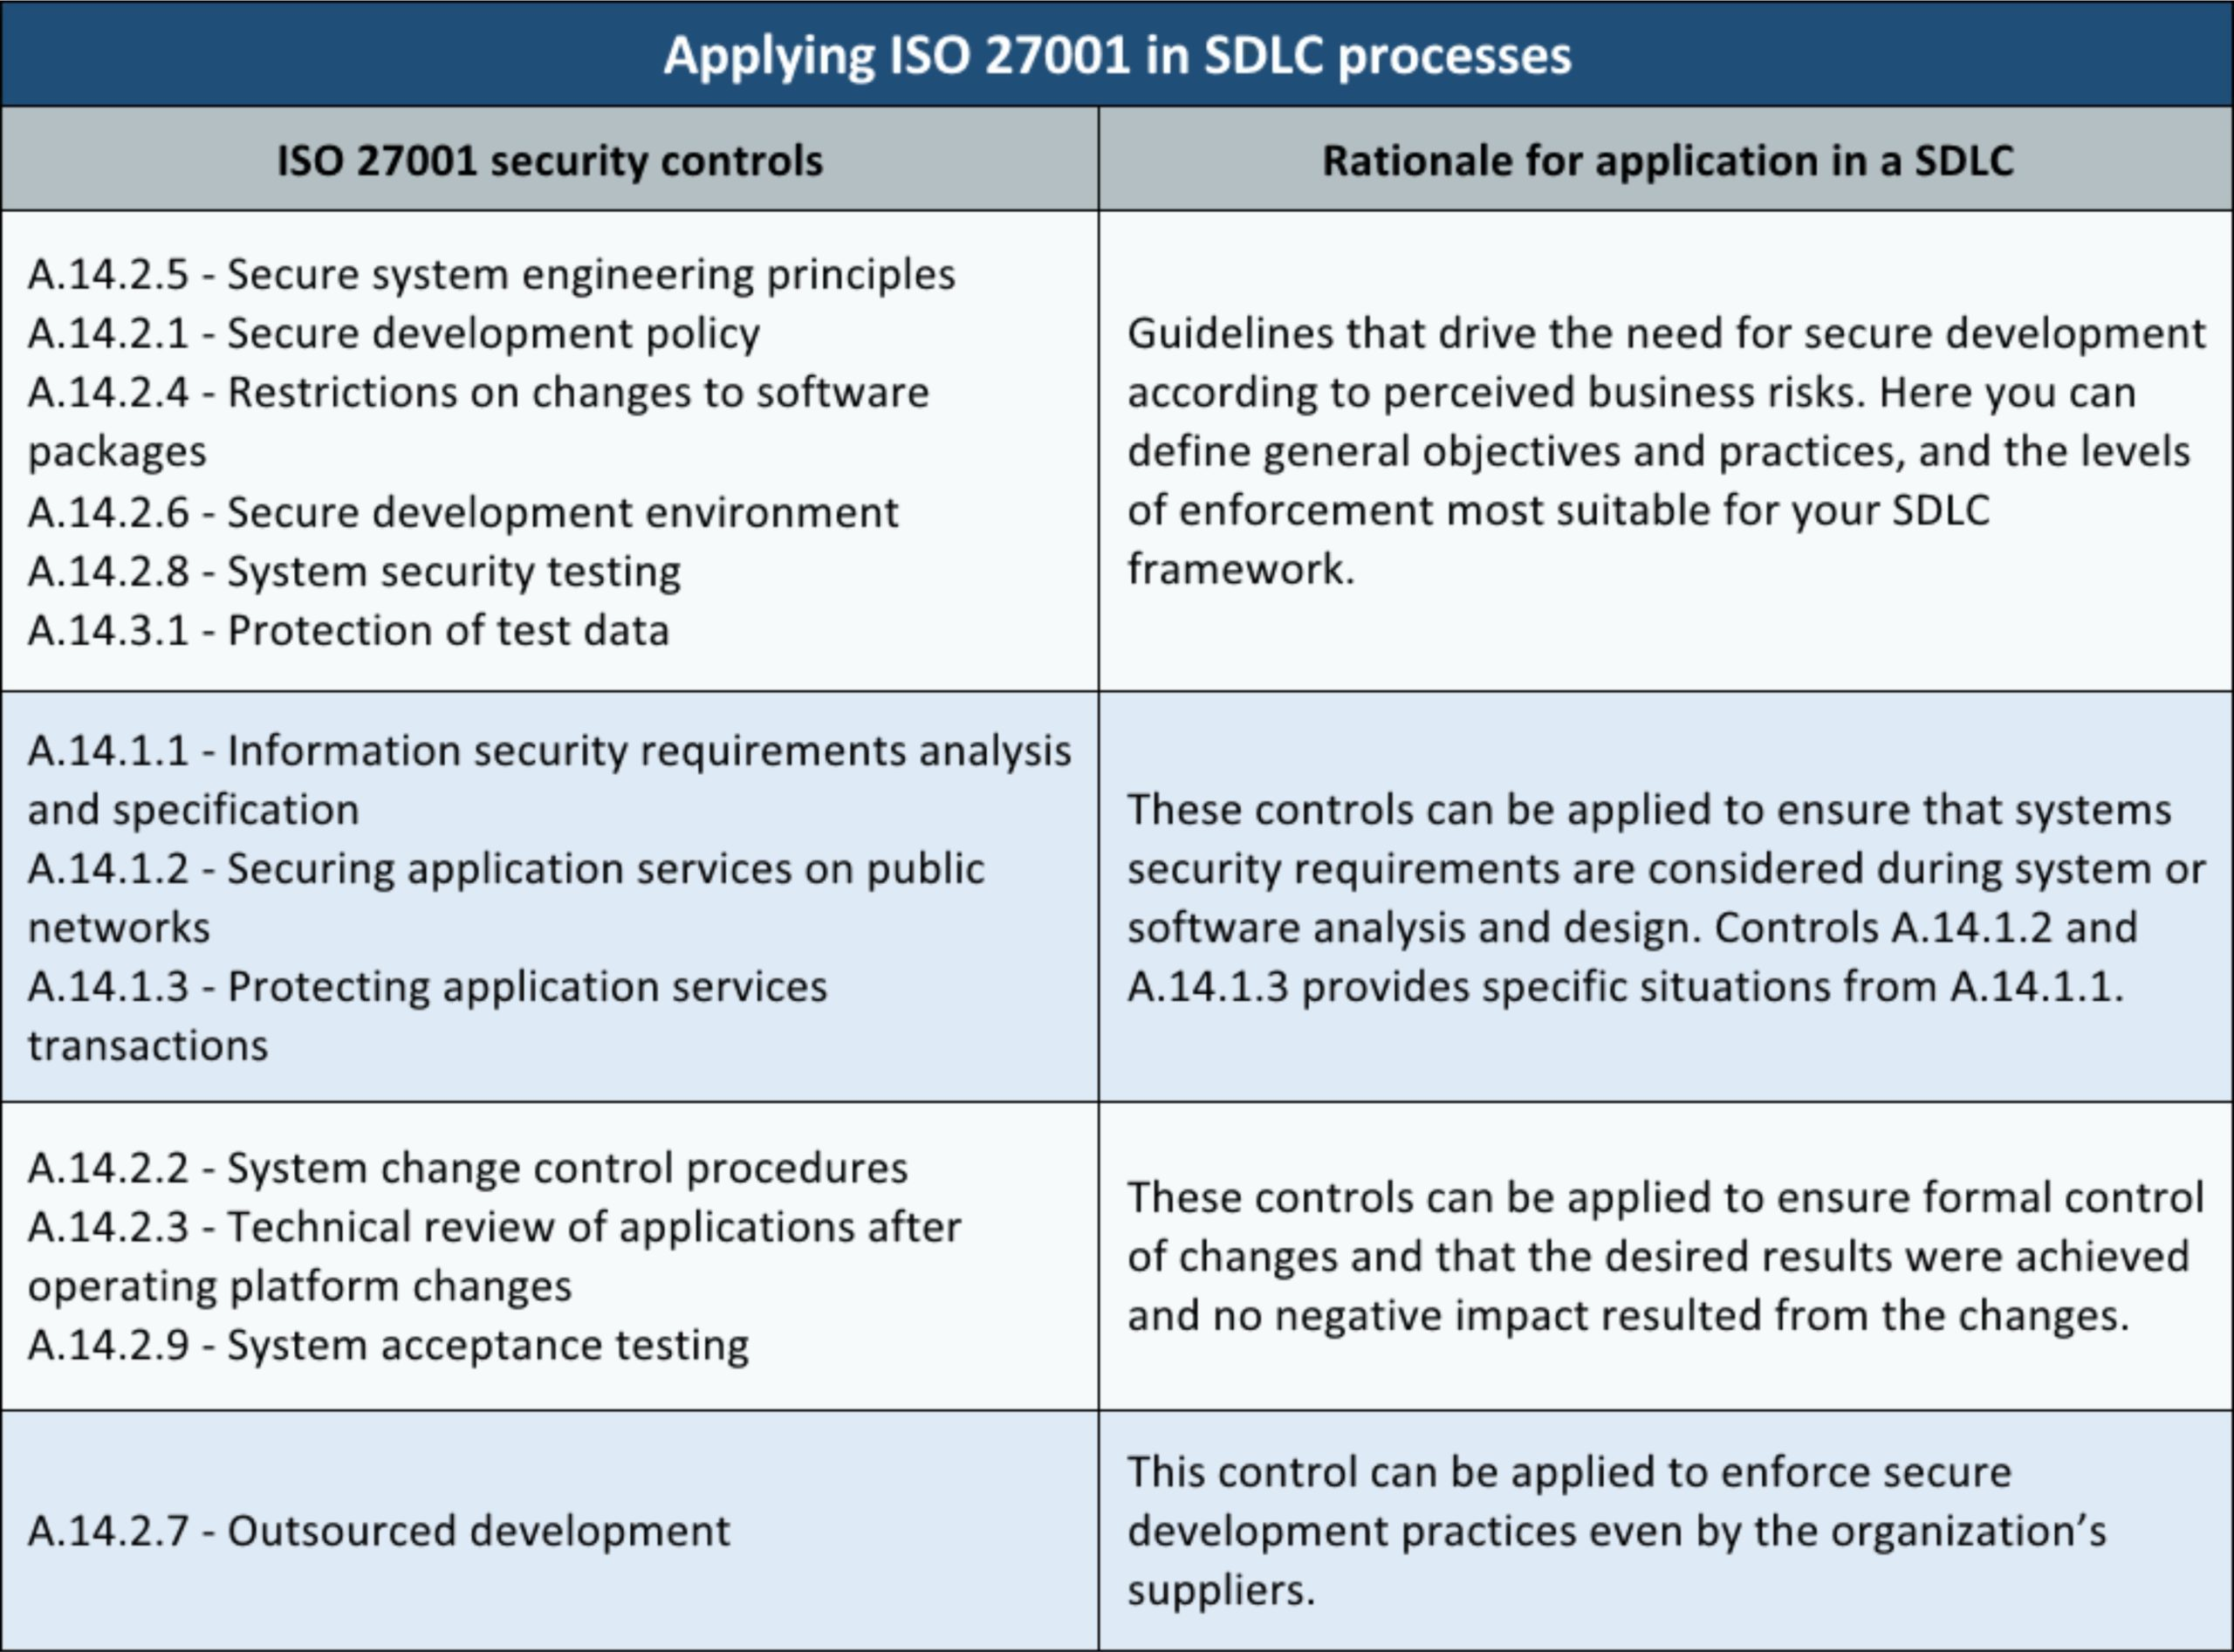 How to integrate ISO 27001 A.14 controls into the SDLC